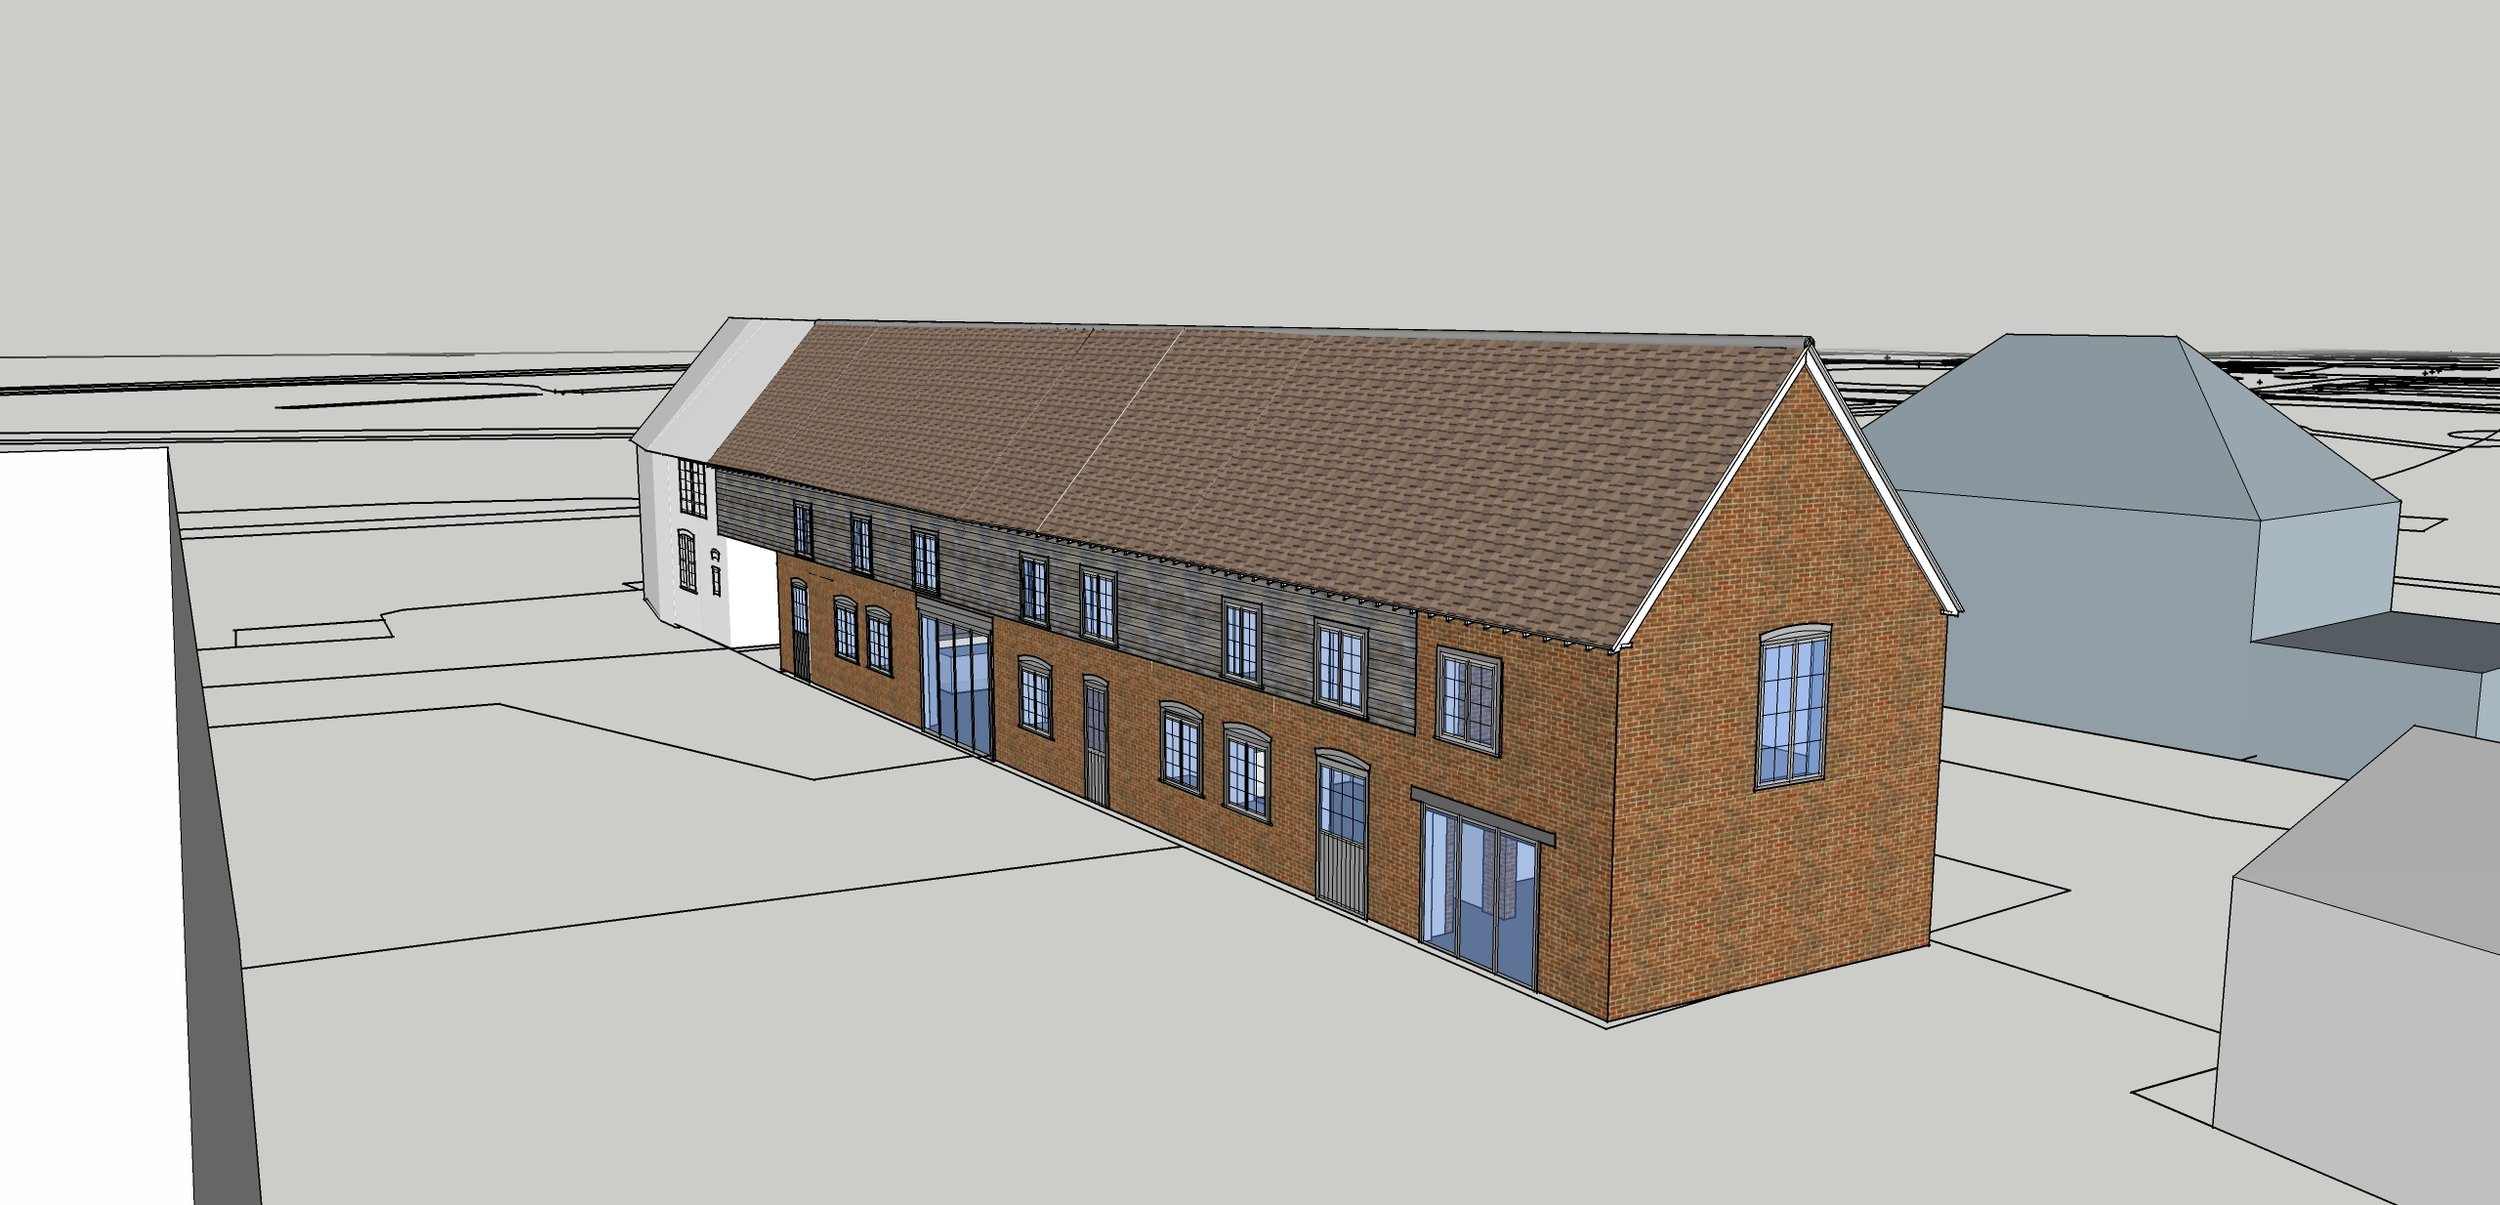 New Residential Barn Conversion at Planning Stage